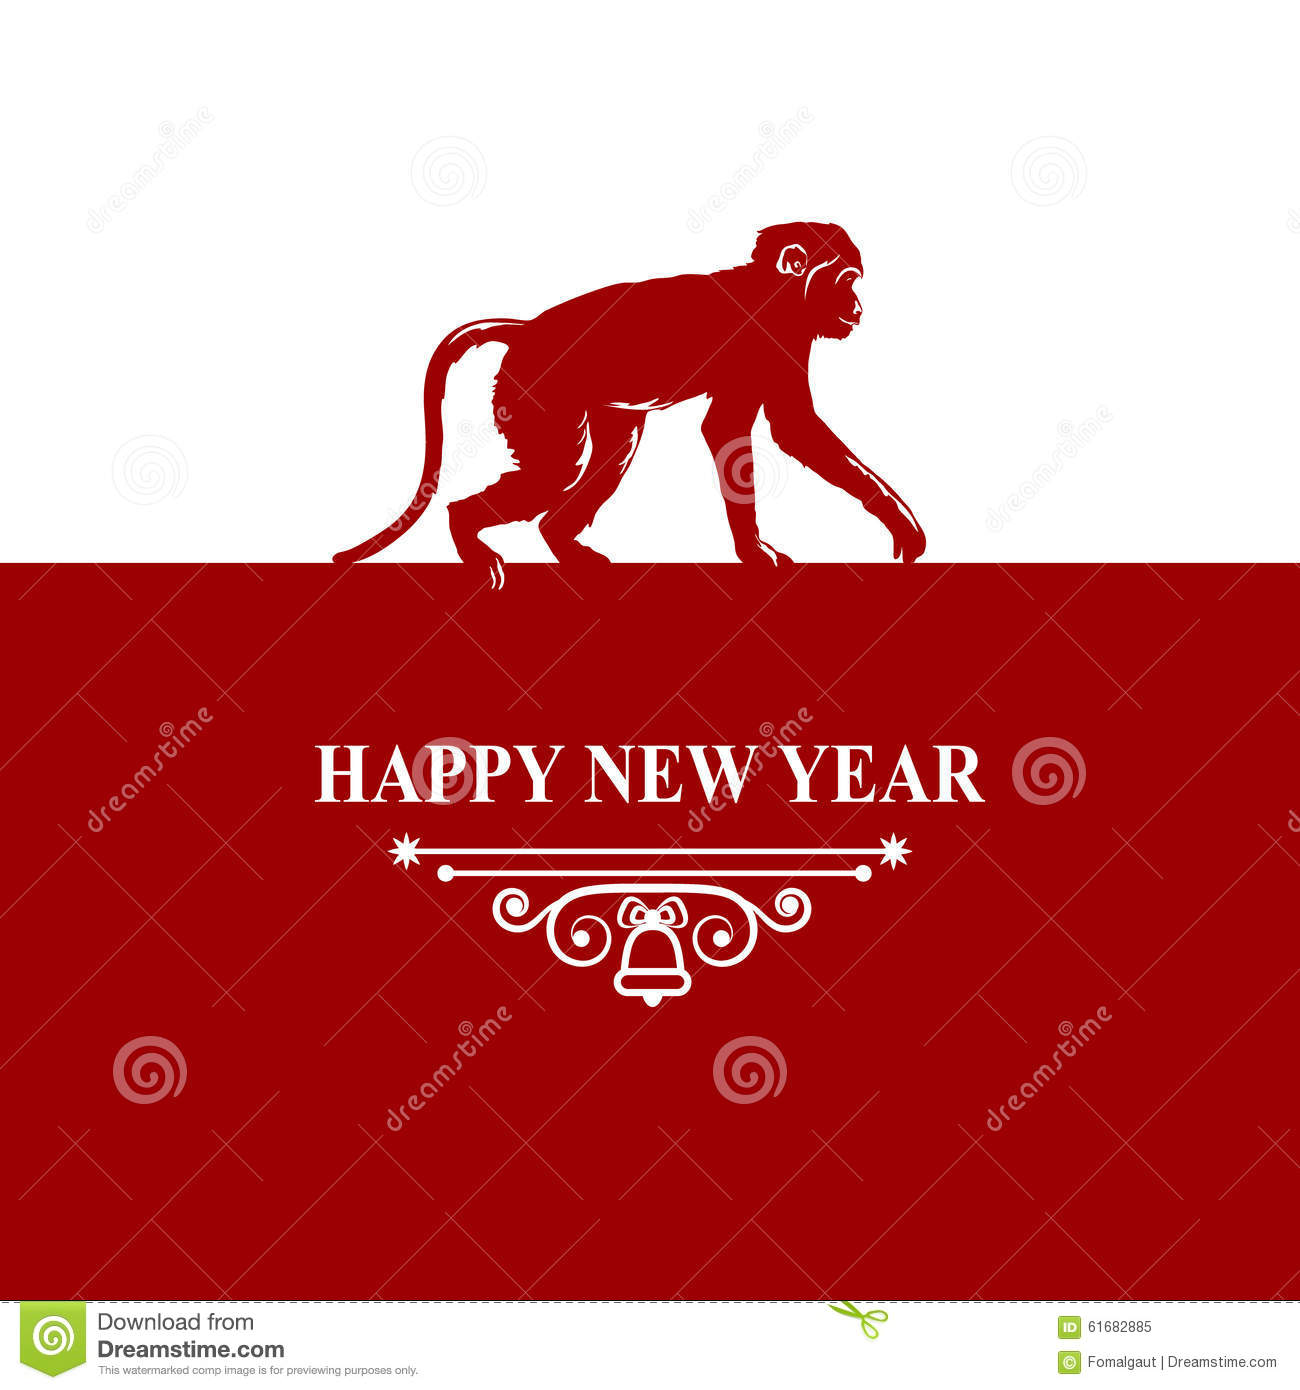 Happy New Year Holidays Wish Decorations Card. Silhouette ...